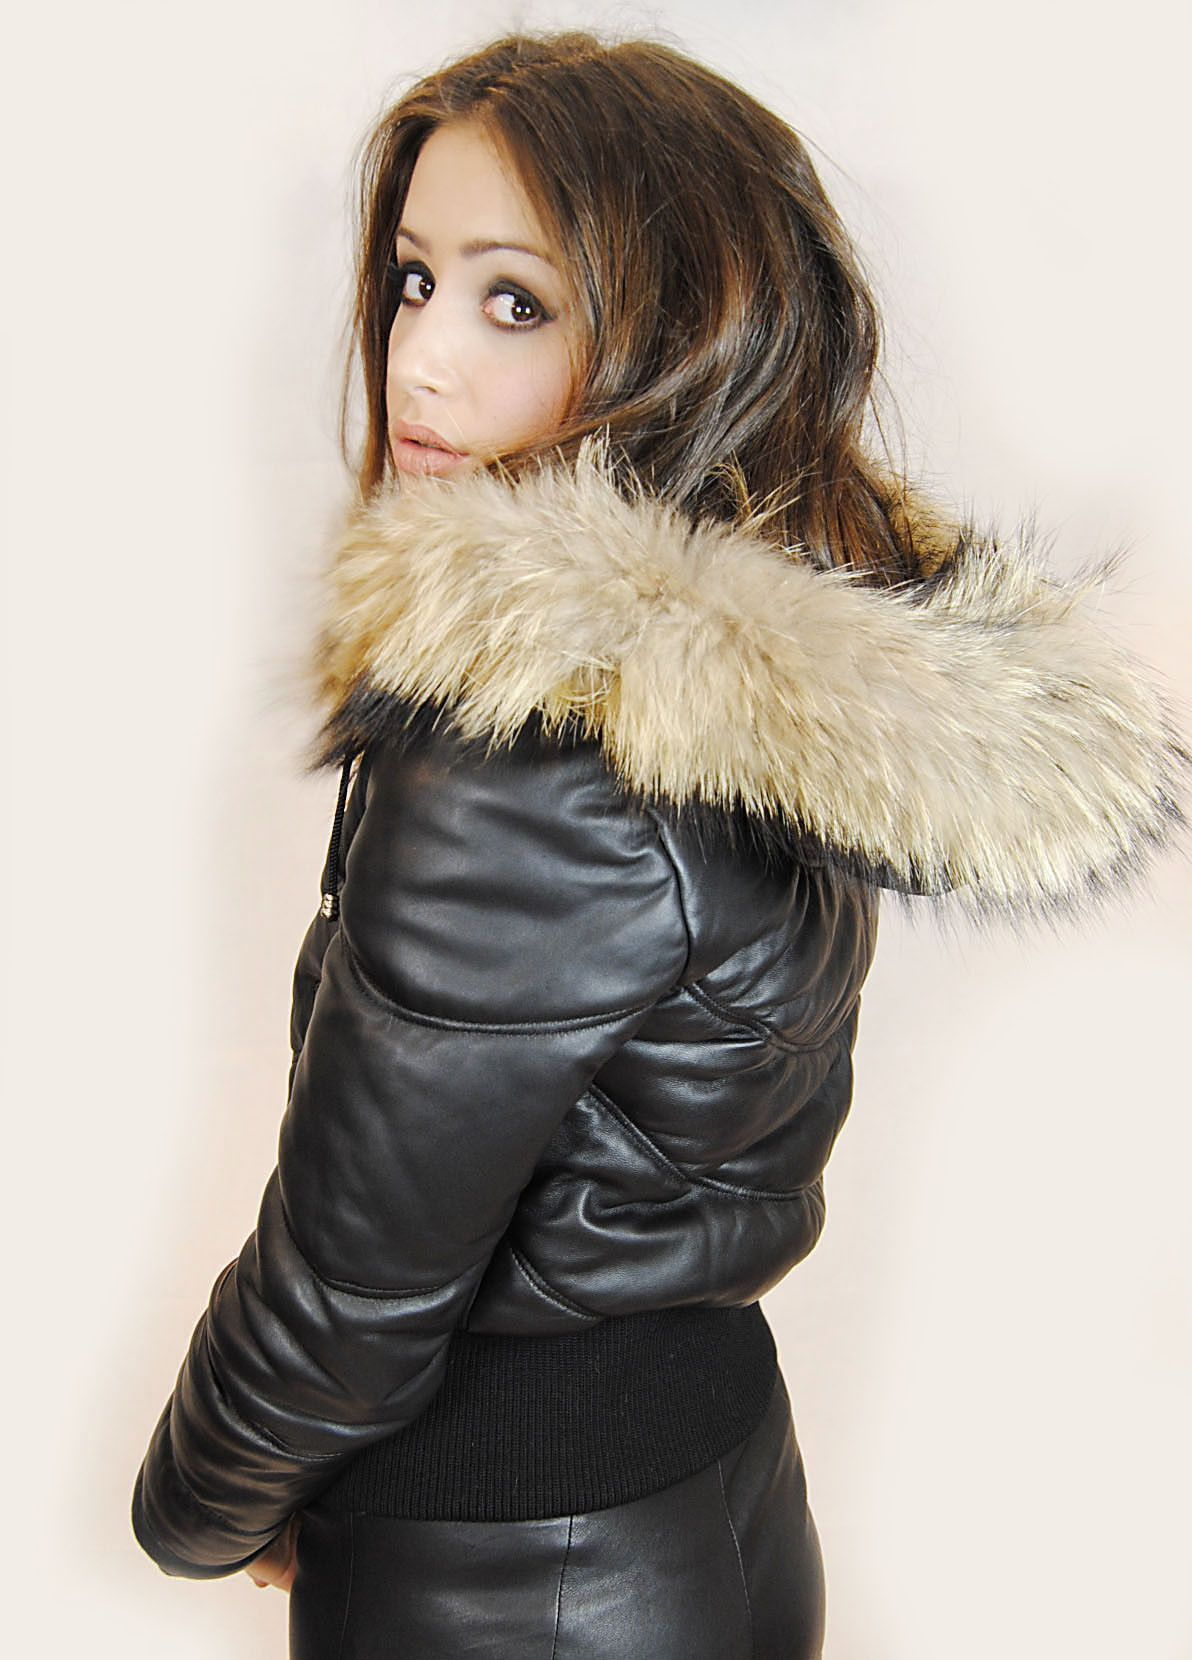 Jessimara Black Leather Puffer Bomber Coat With Raccoon Fur Trim Leather Jacket With Hood Bomber Coat Leather Jackets Women [ 1660 x 1192 Pixel ]